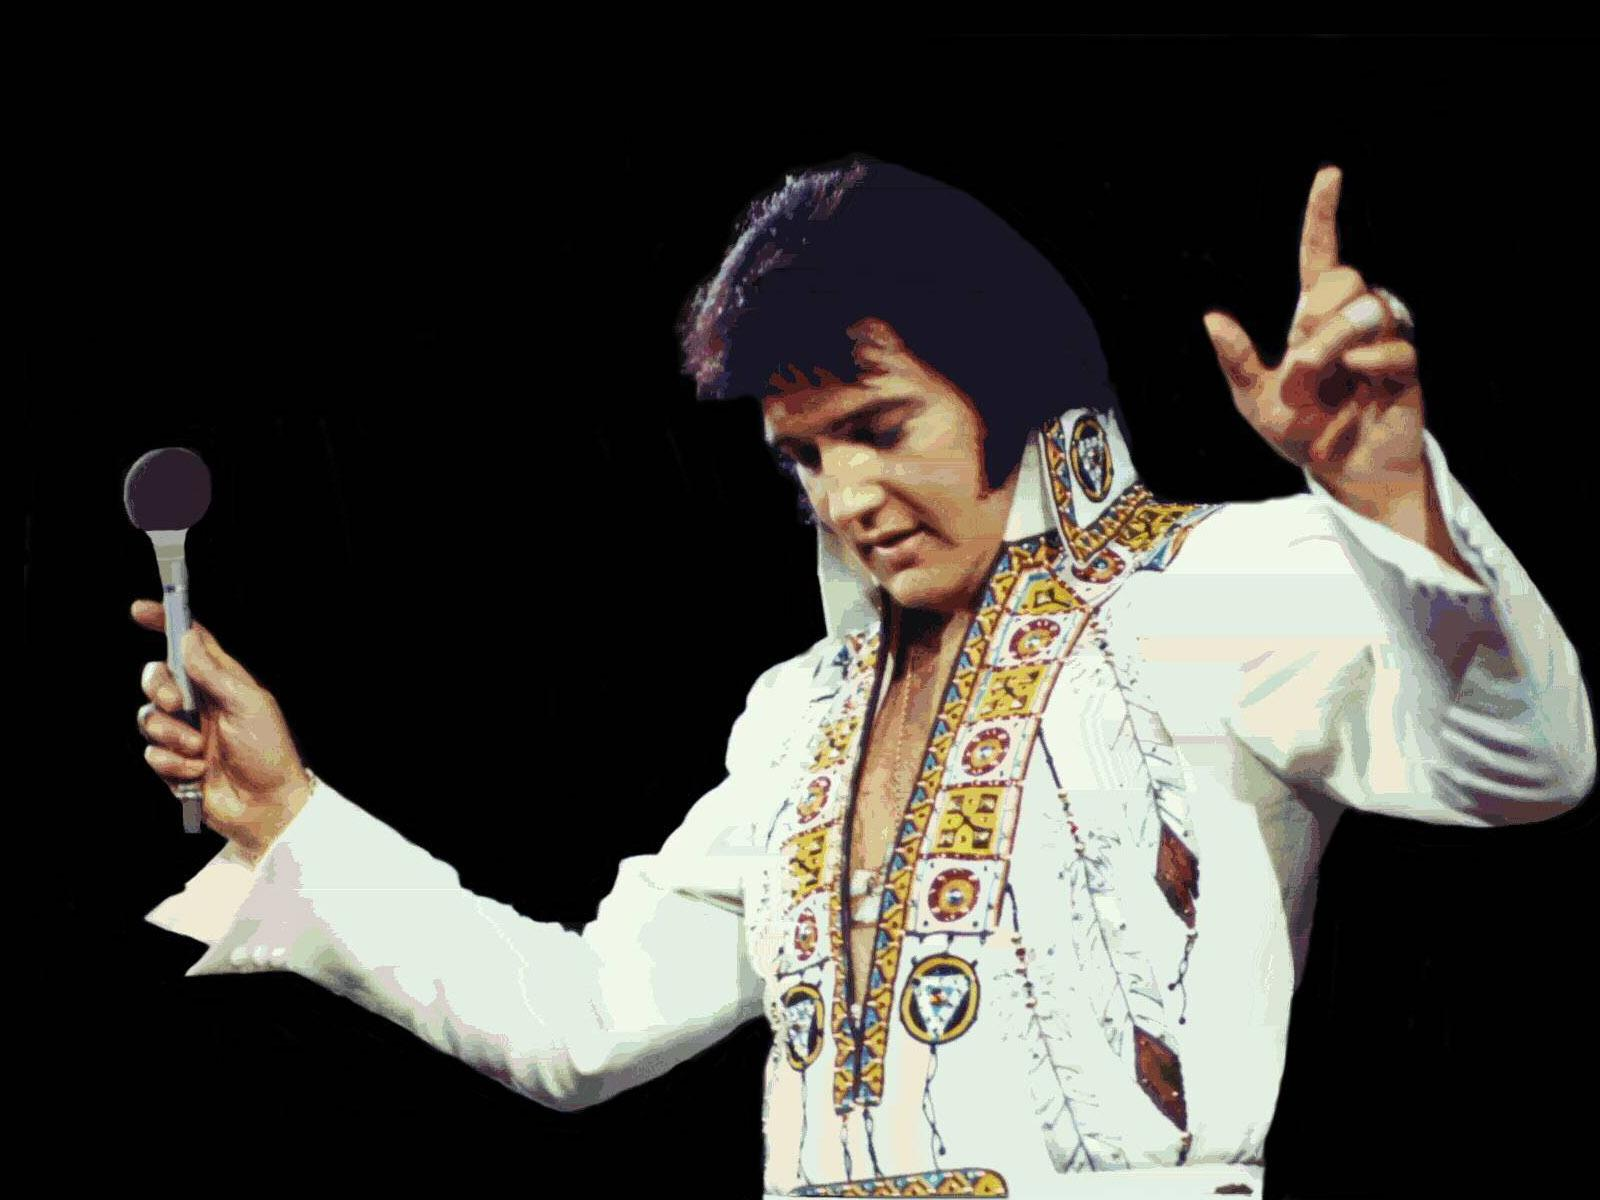 Elvis Presley Wallpapers, Pictures, Images